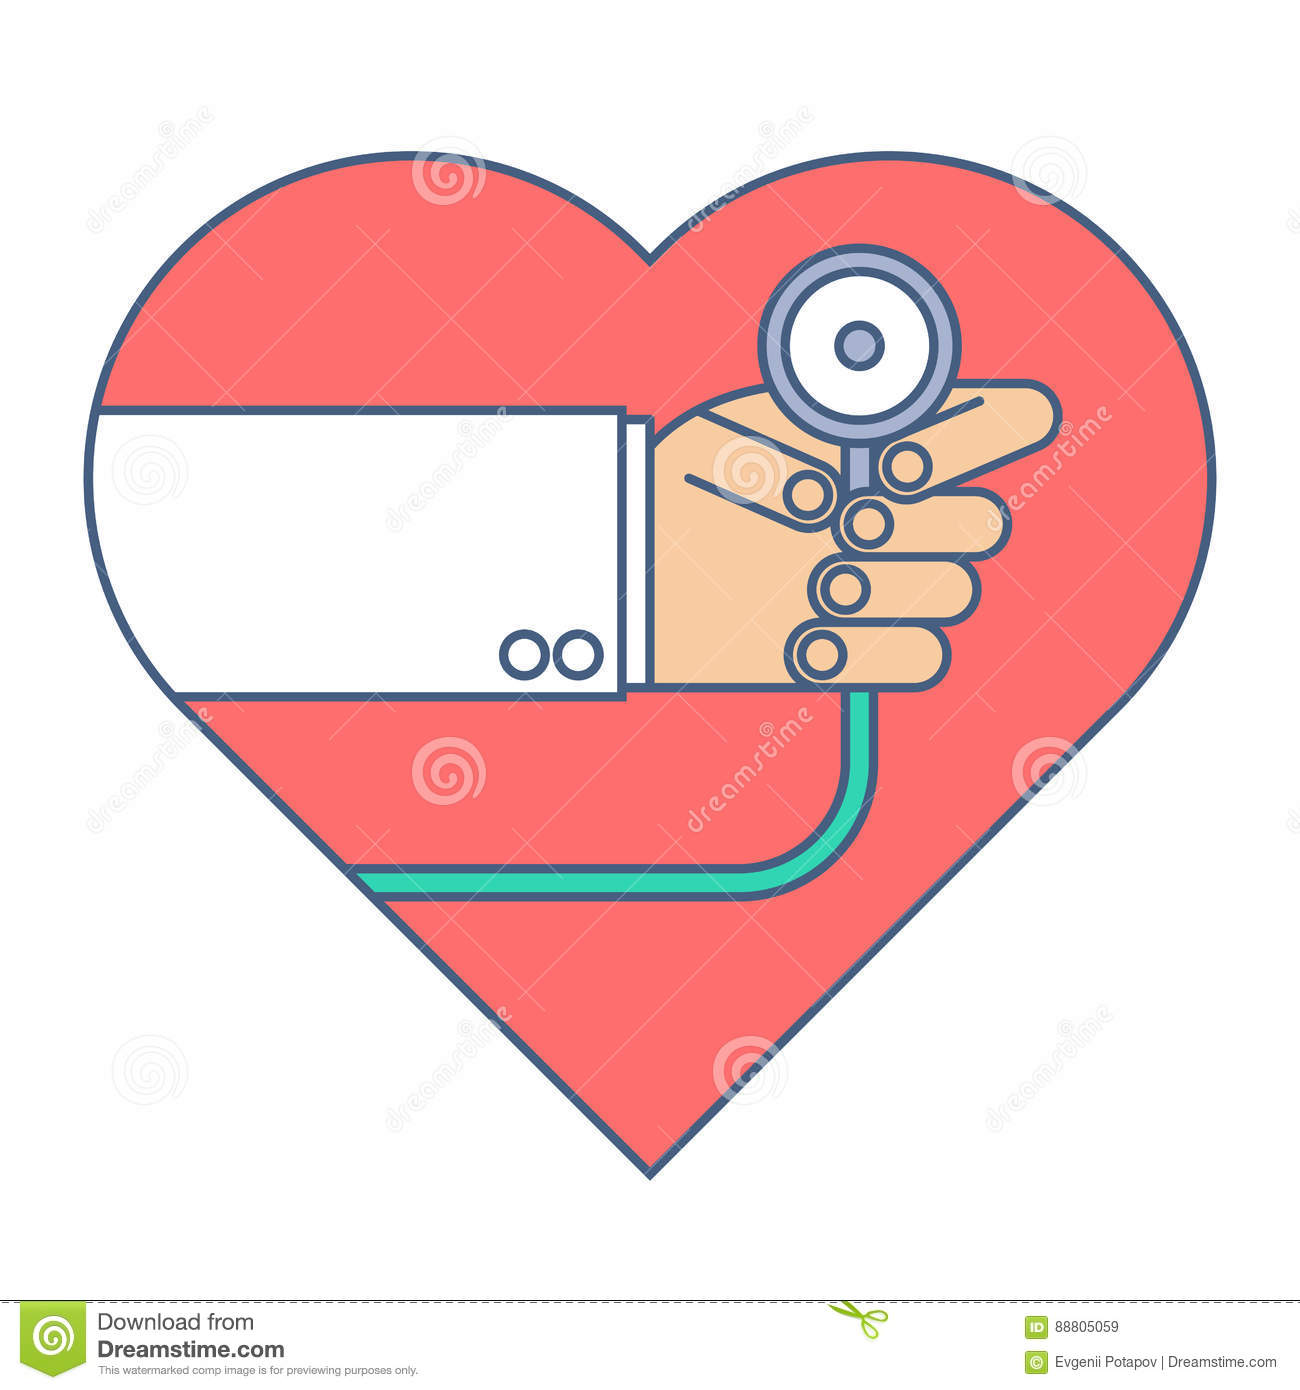 Doctor with a stethoscope exams heart pulse. Flat line illustration.